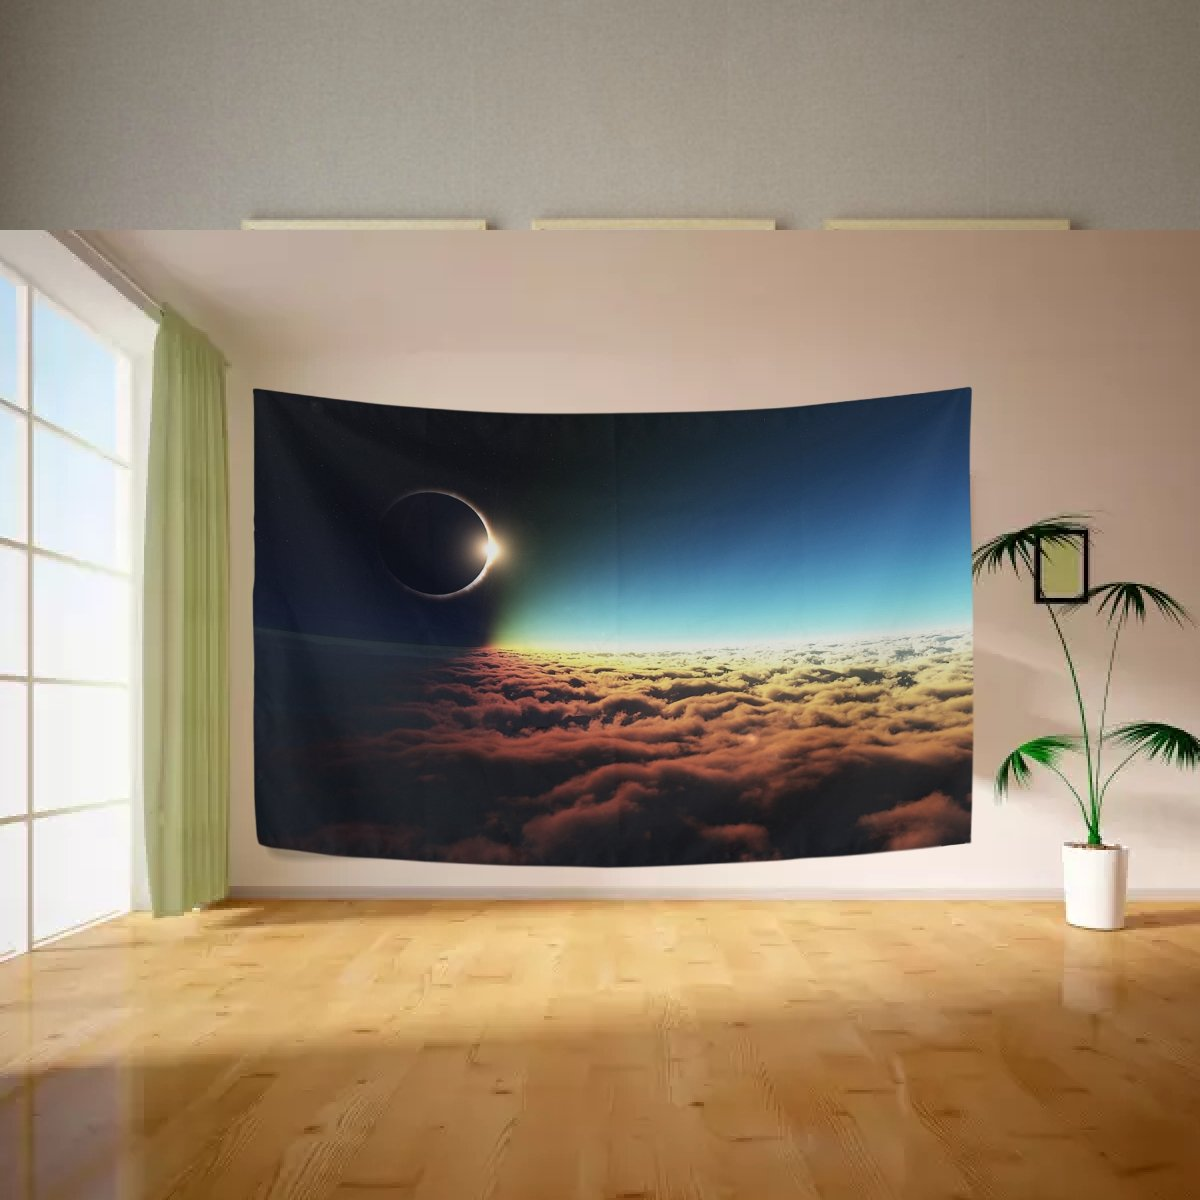 Vipsk Tapestry Total Solar Eclipse Blue Sky Wall Hanging Artistic Polyester Fabric Cottage Dorm Wall Art Home Decoration 60 x 40 inches gray Wall decoration